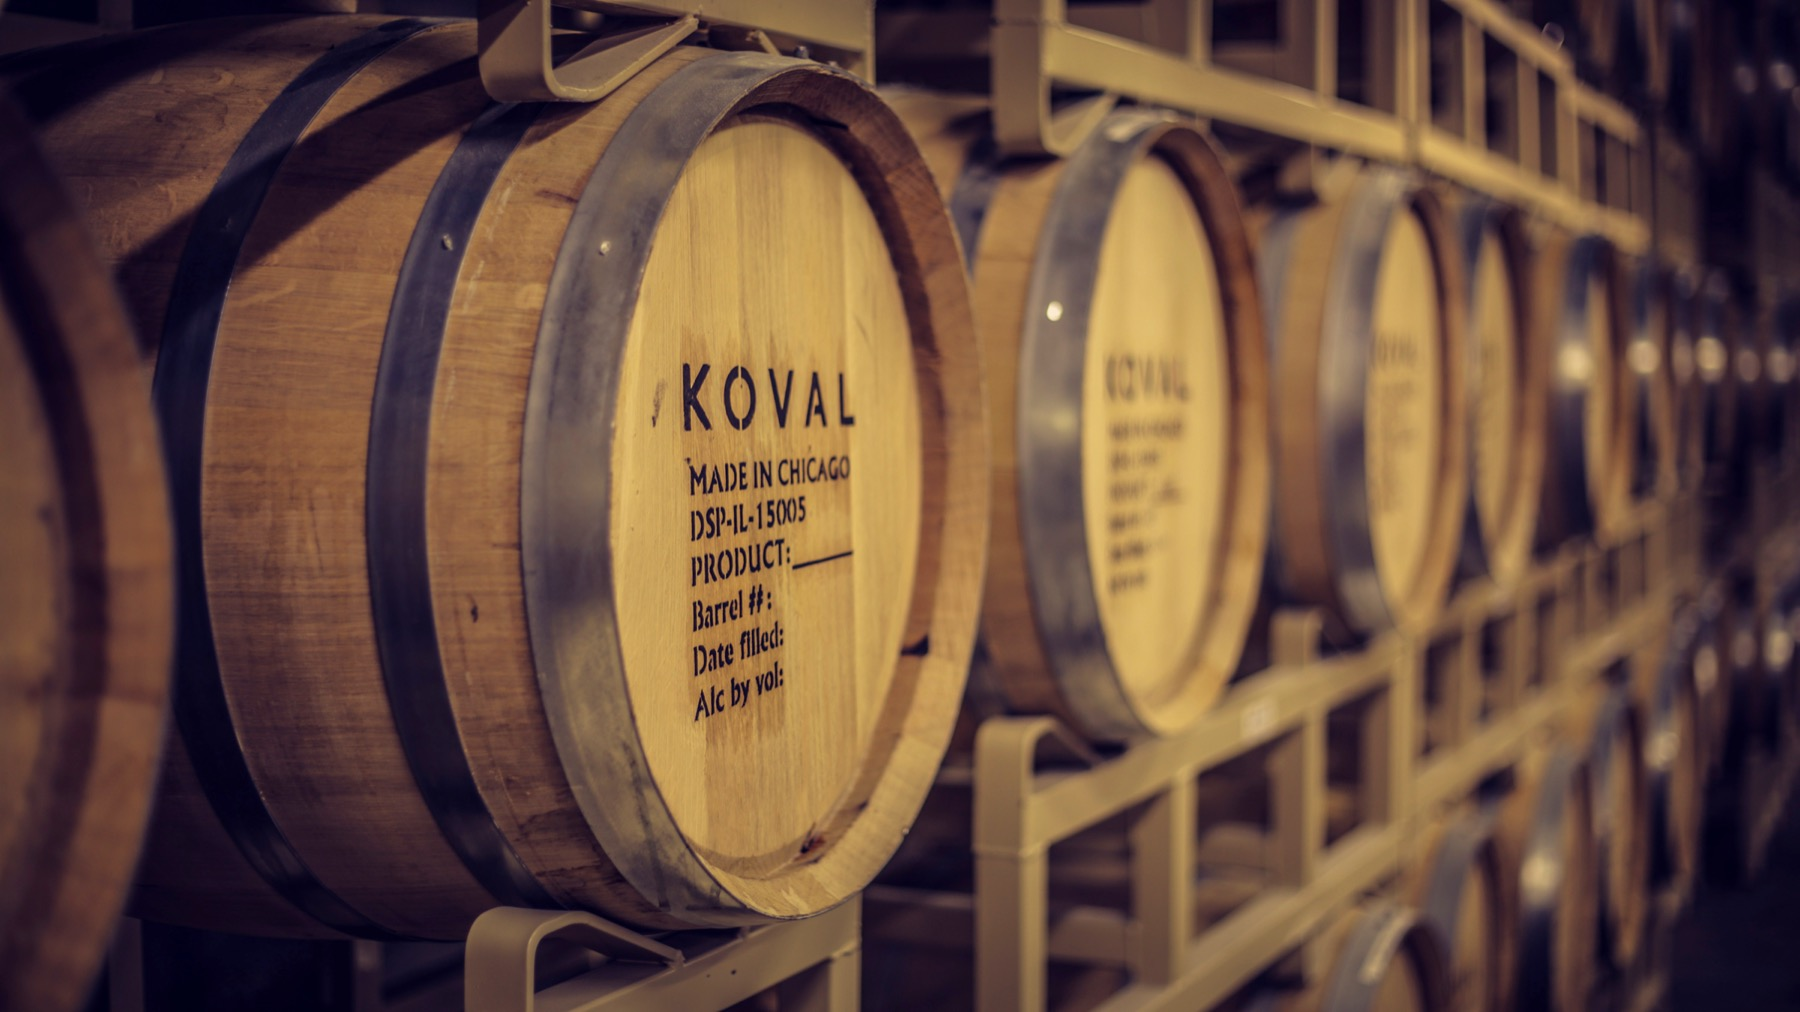 Koval Barrel